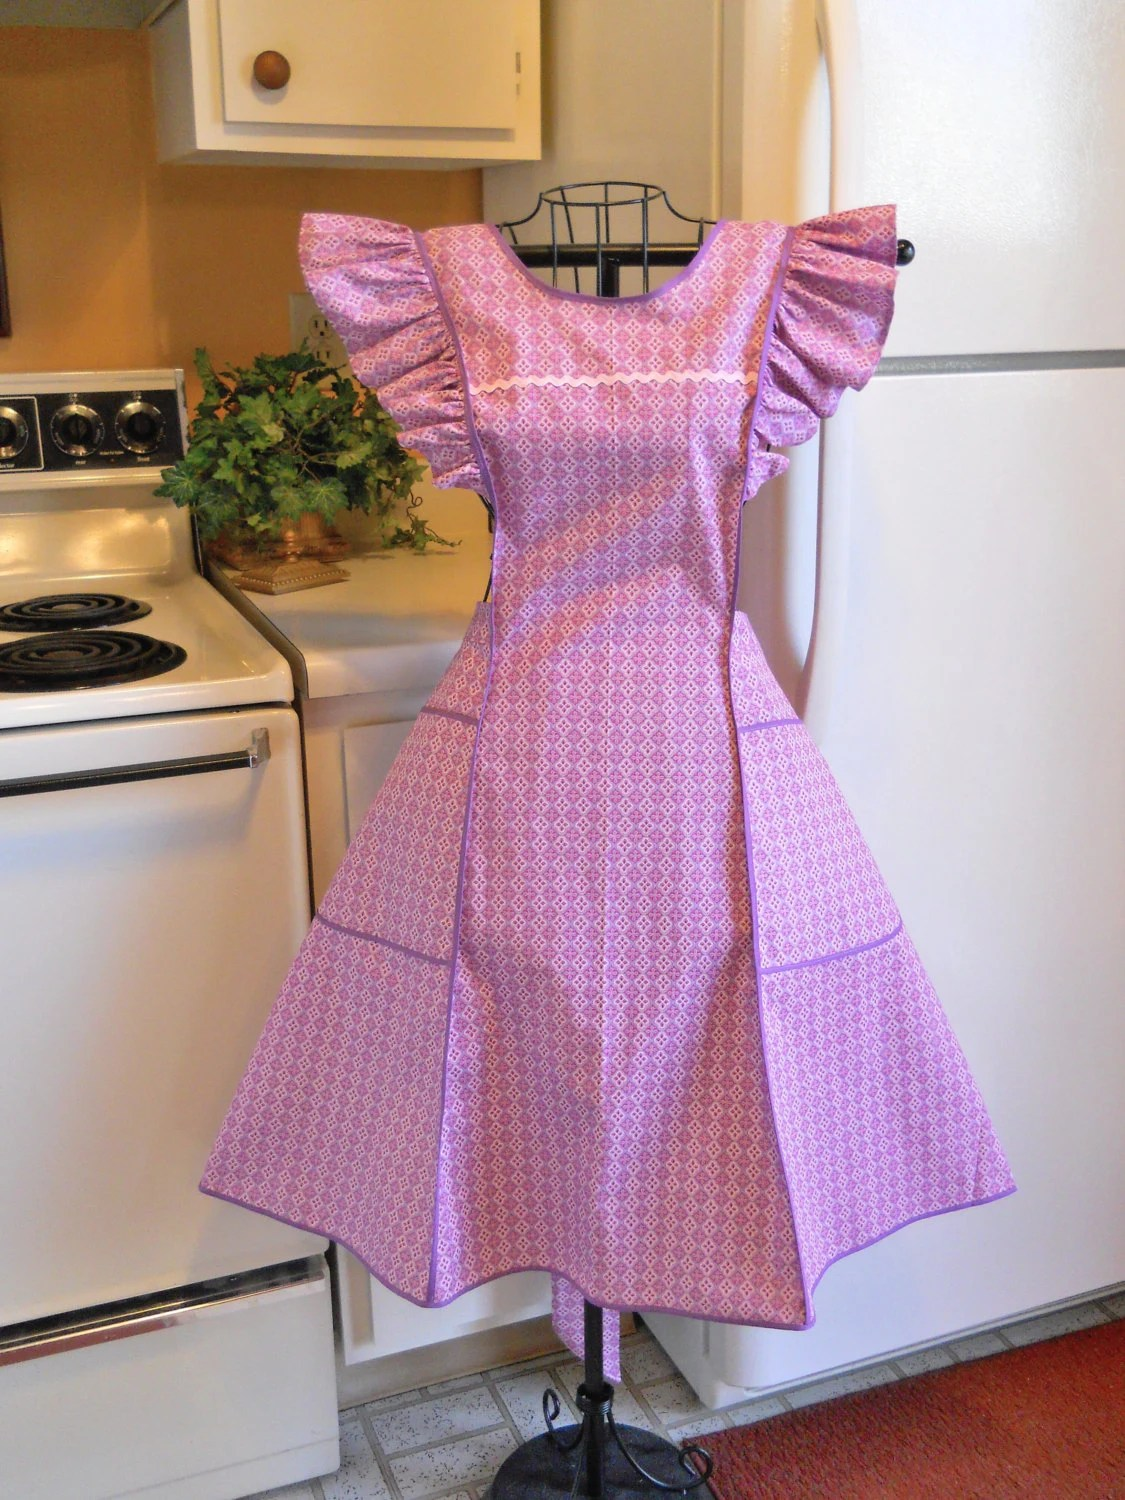 Old Fashioned Pinafore Full Apron In Pink And Lavender